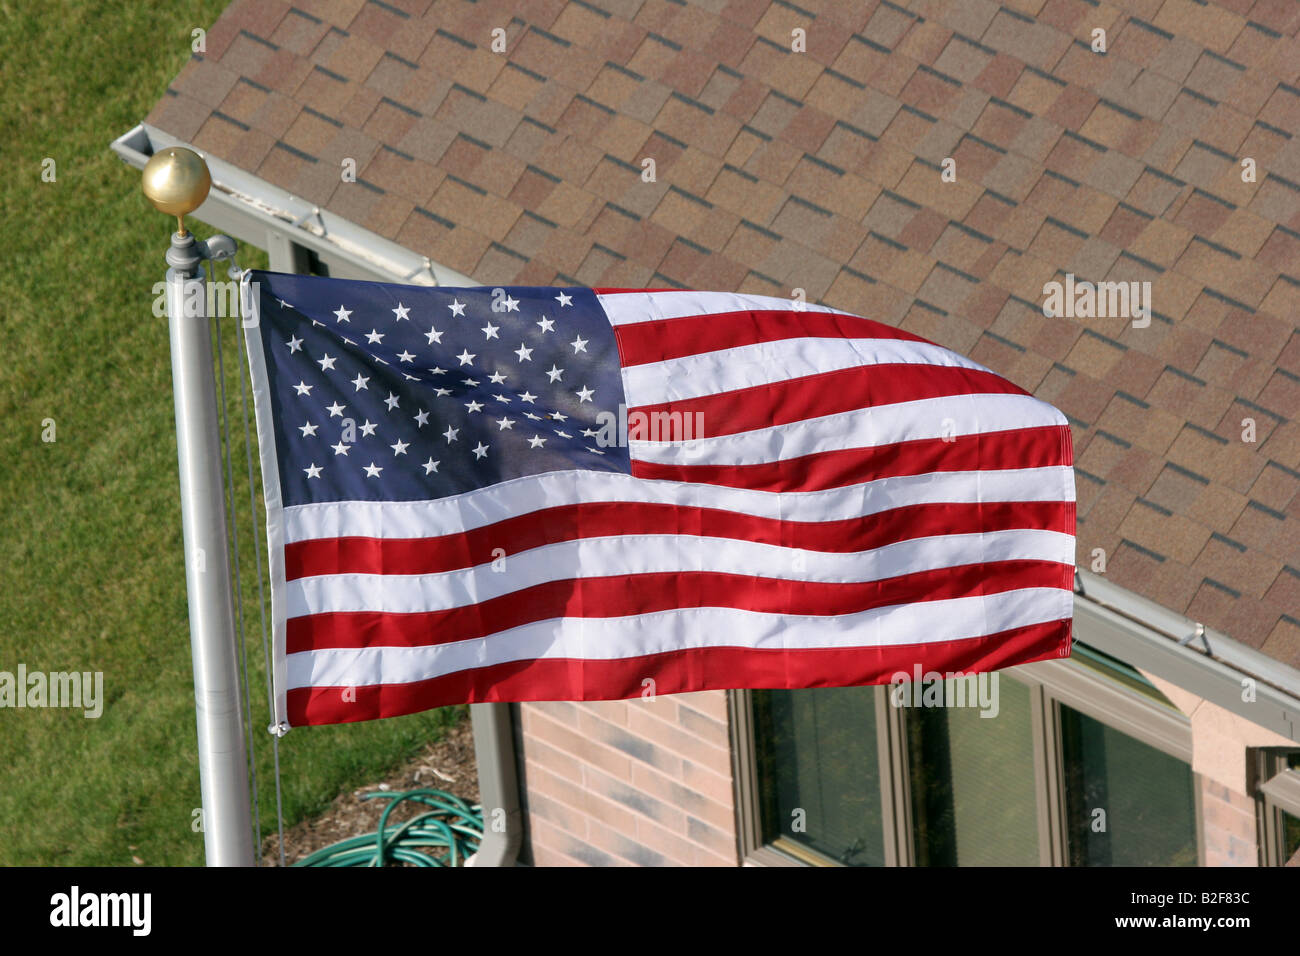 An american flag flying on a flag pole viewed from above the house an american flag flying on a flag pole viewed from above the house sciox Image collections